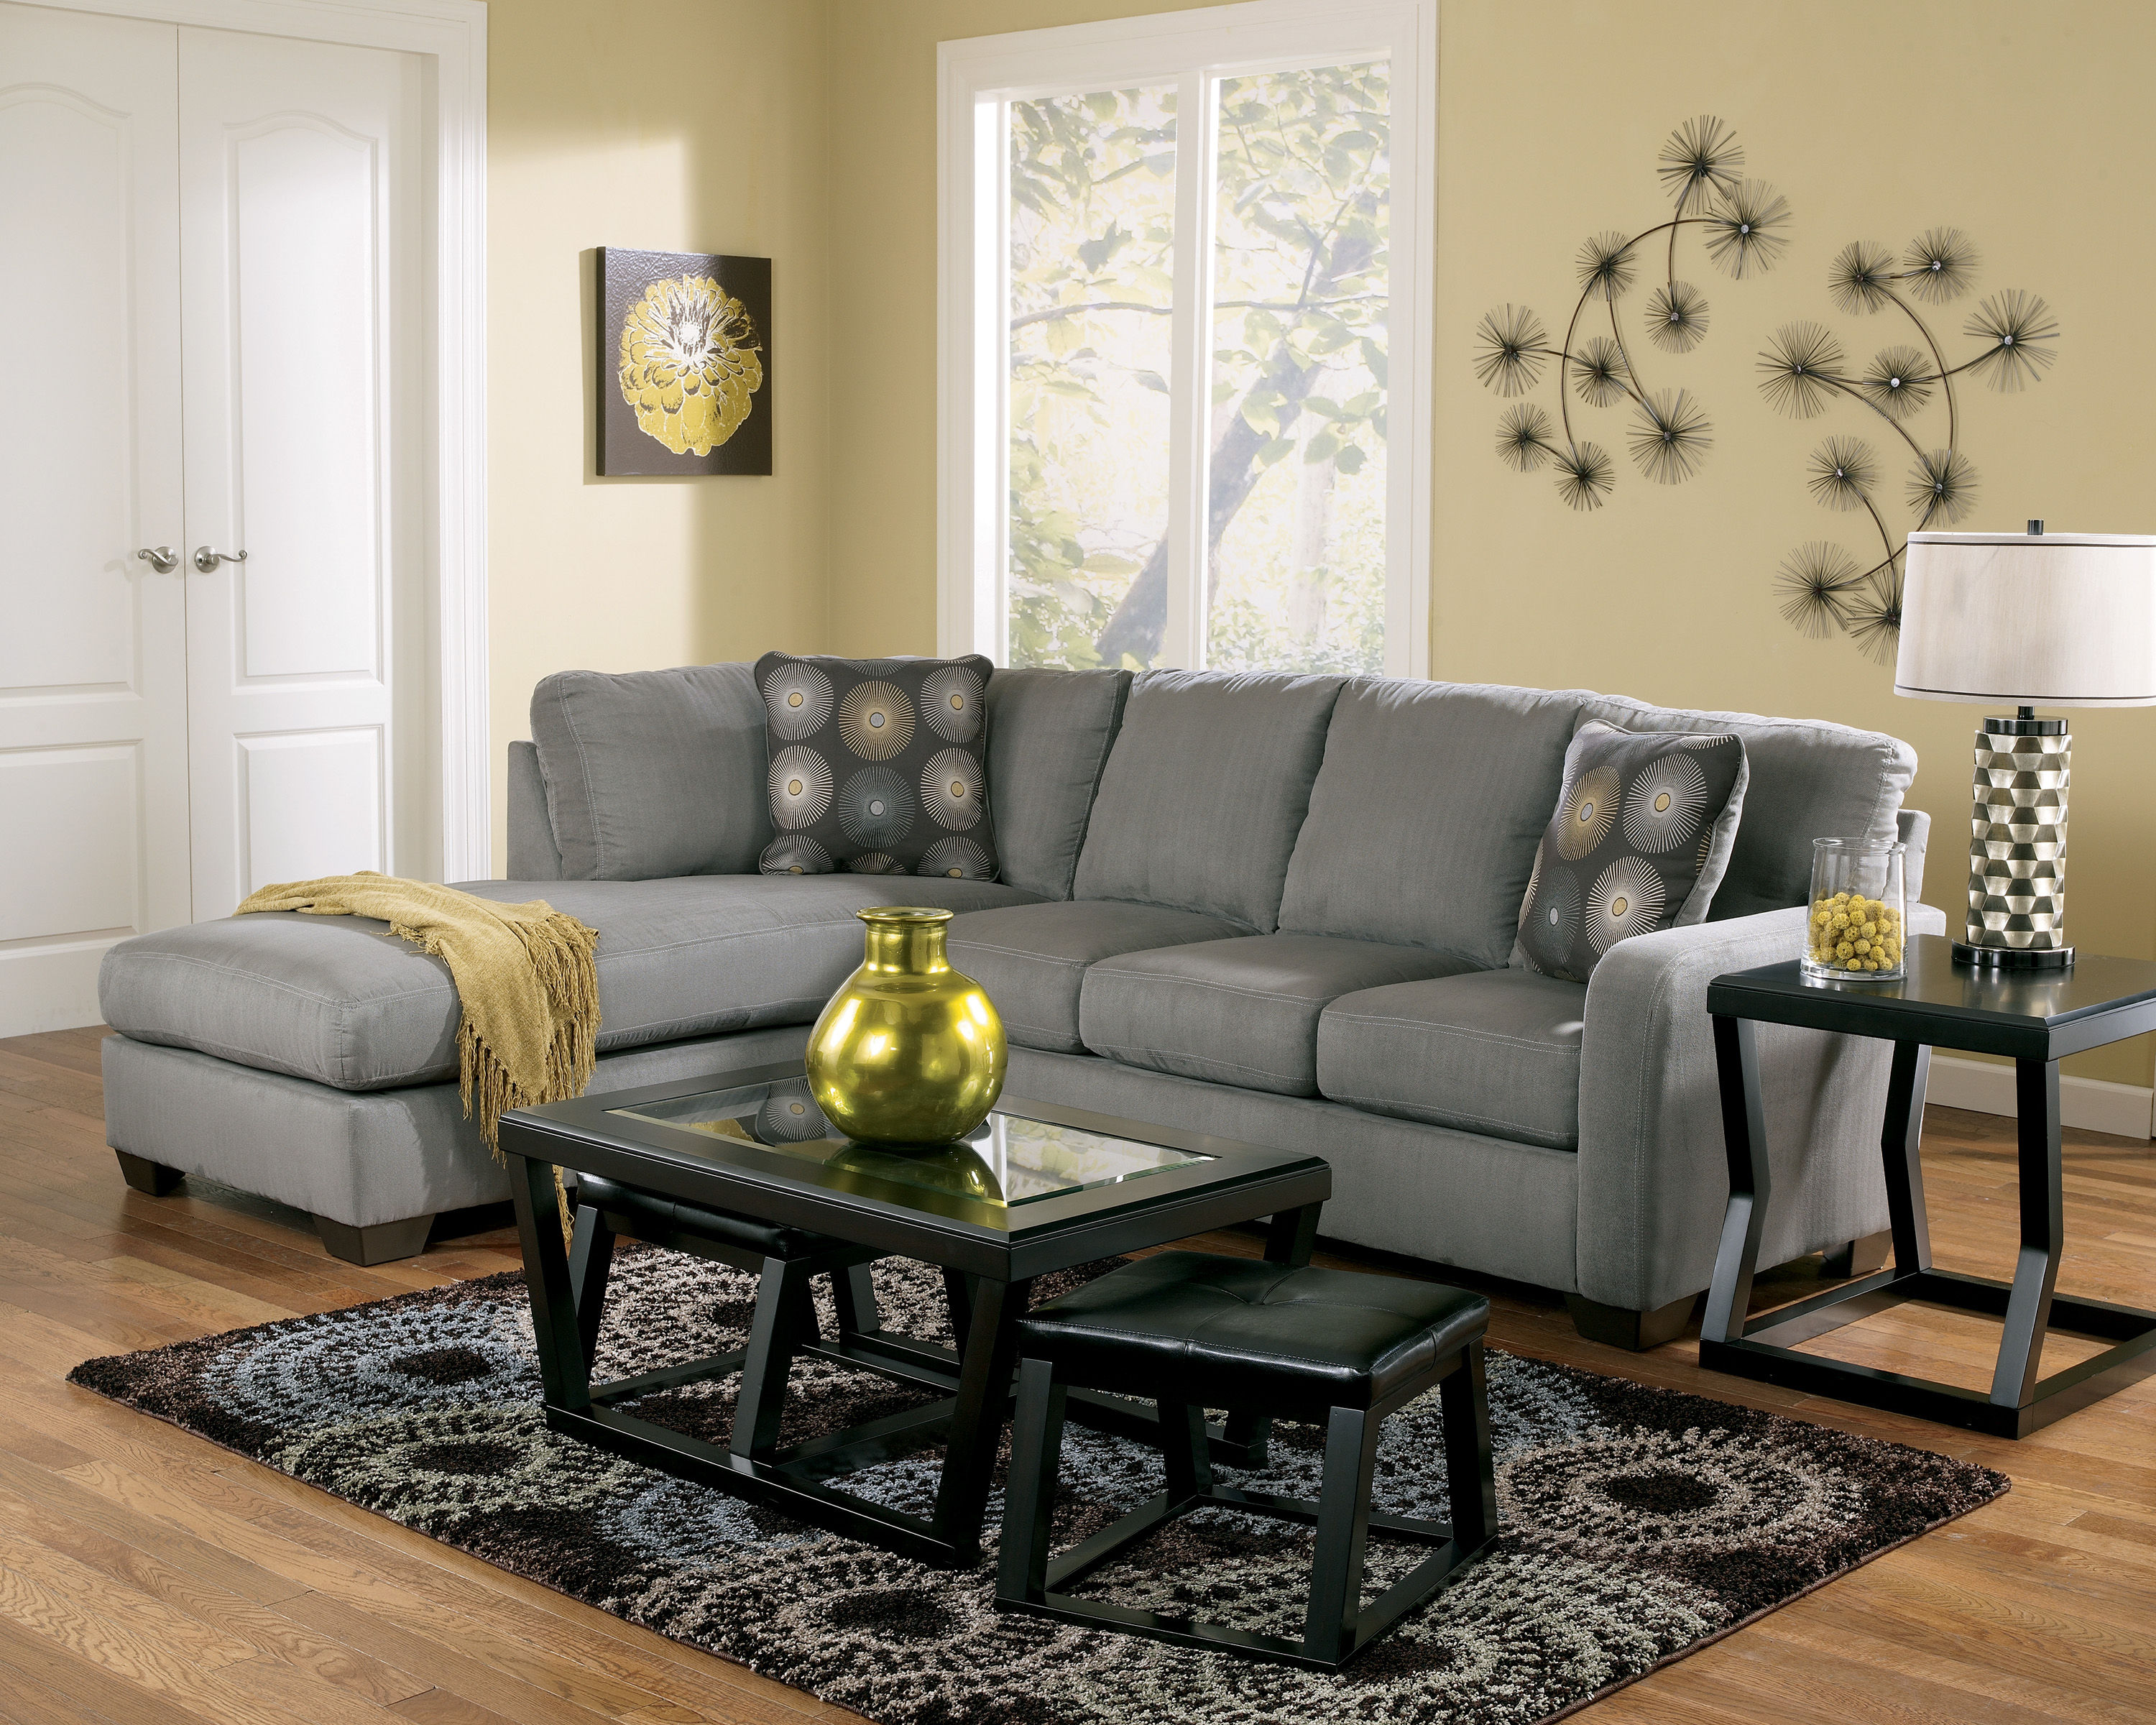 sectional full pitkin sofa of size go motorized grobania additional small center rooms with sofas to gallery fantastic fresh elegant ashley discount sectionals attractive gray furniture